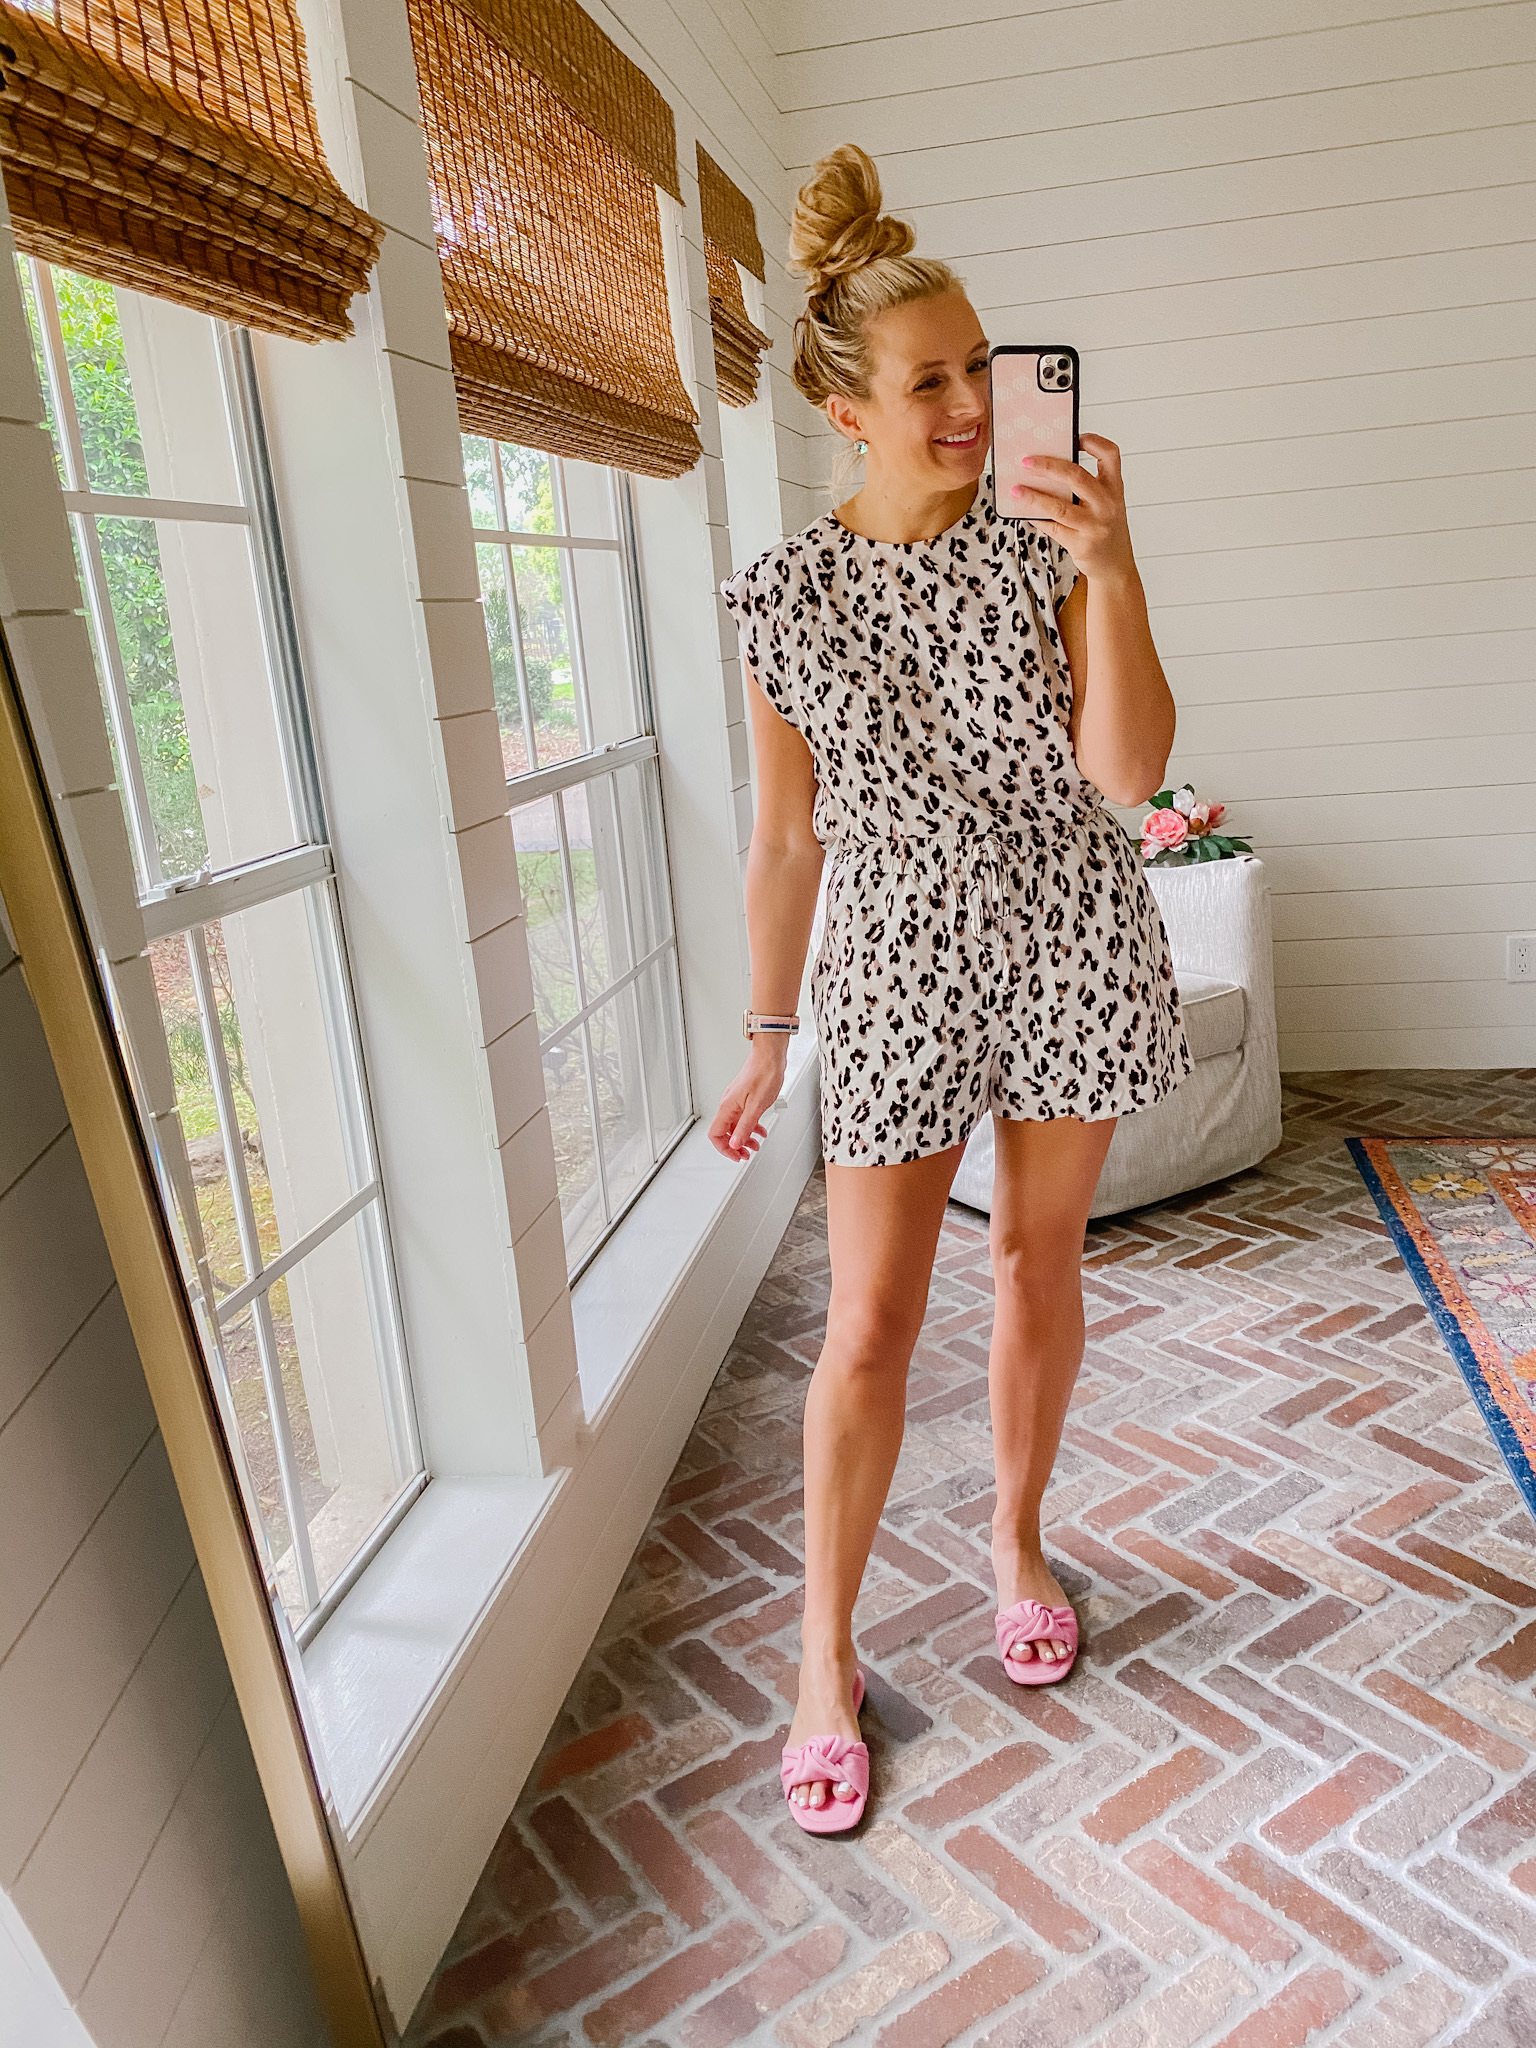 Express New Arrivals by popular Houston fashion blog, The House of Fancy: image of a woman wearing a Express leopard print top and Express leopard print shorts with pink slide sandals.